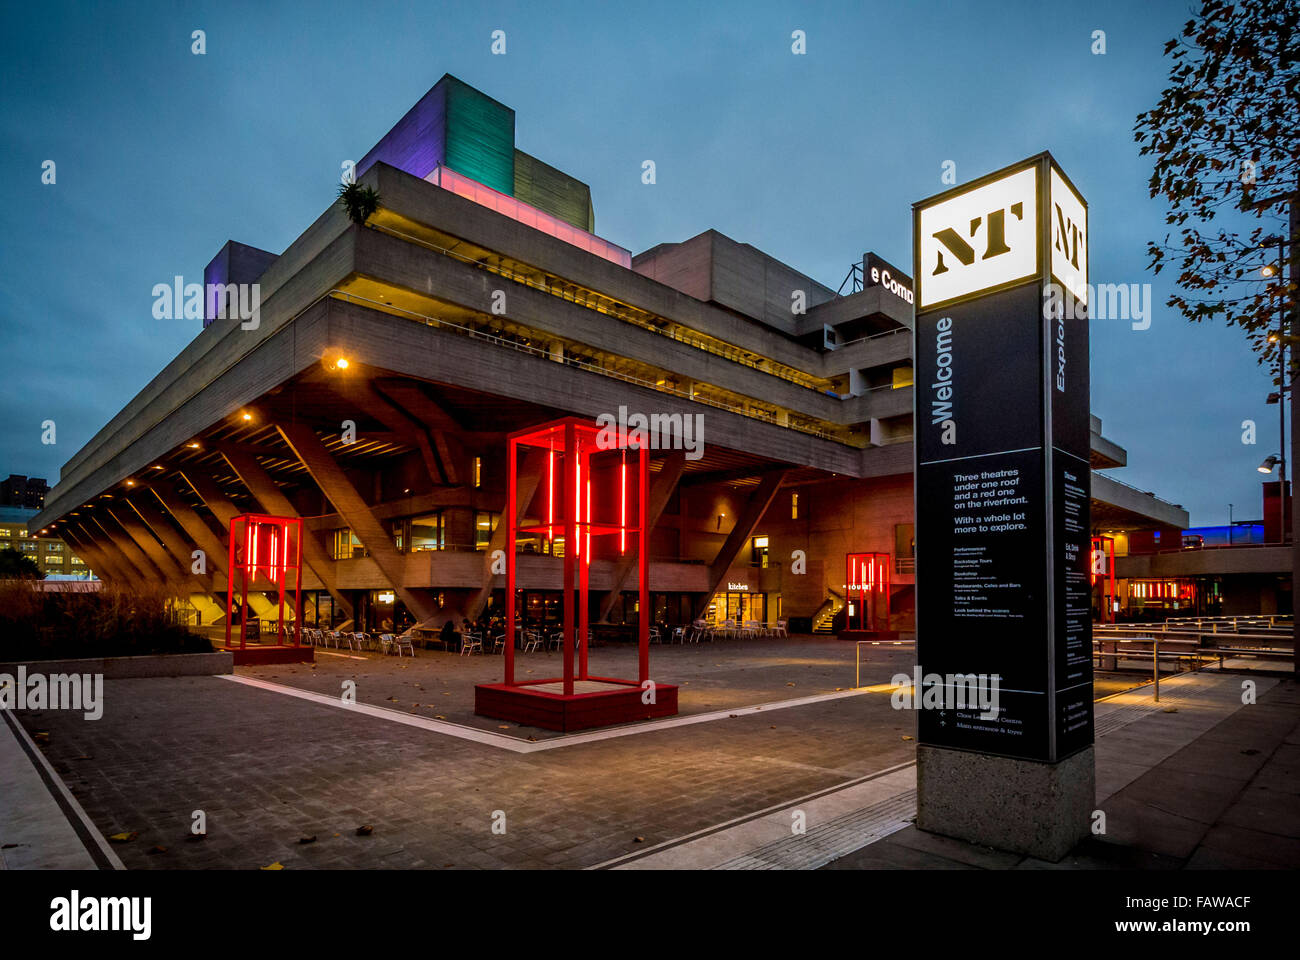 National Theatre on the South bank of the river Thames, London, UK. - Stock Image